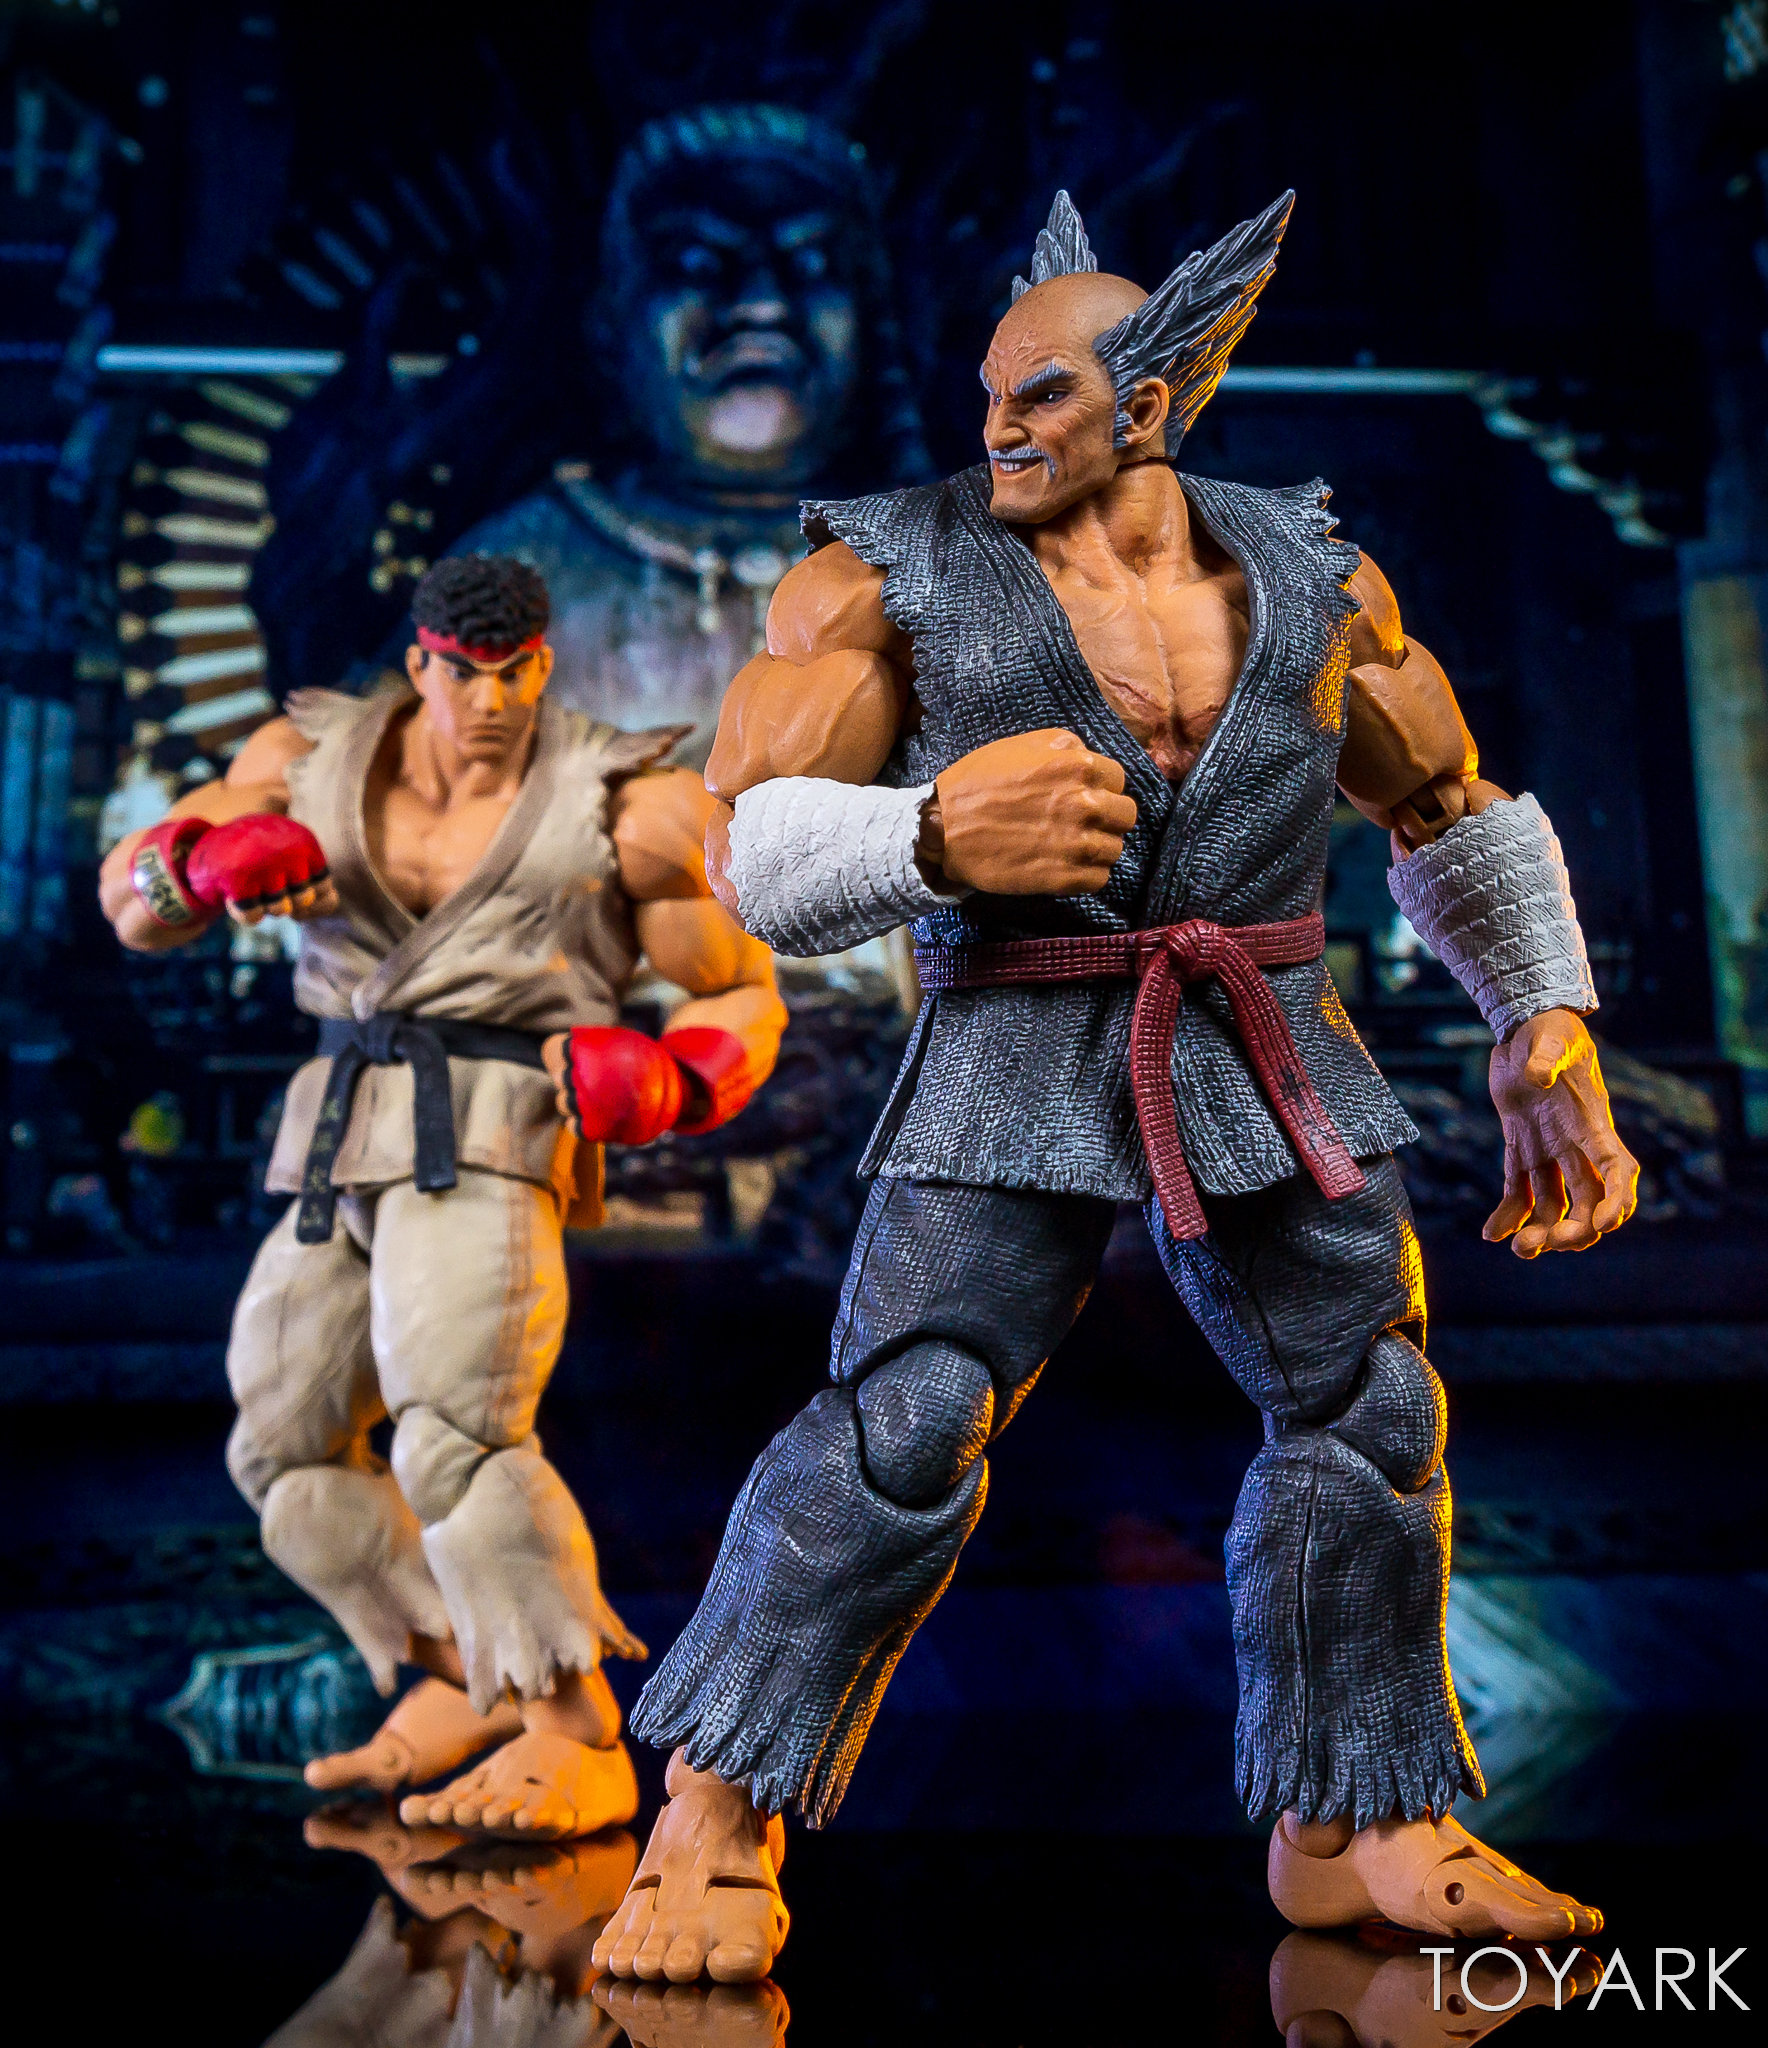 https://news.toyark.com/wp-content/uploads/sites/4/2018/05/Storm-Heihachi-Figure-026.jpg